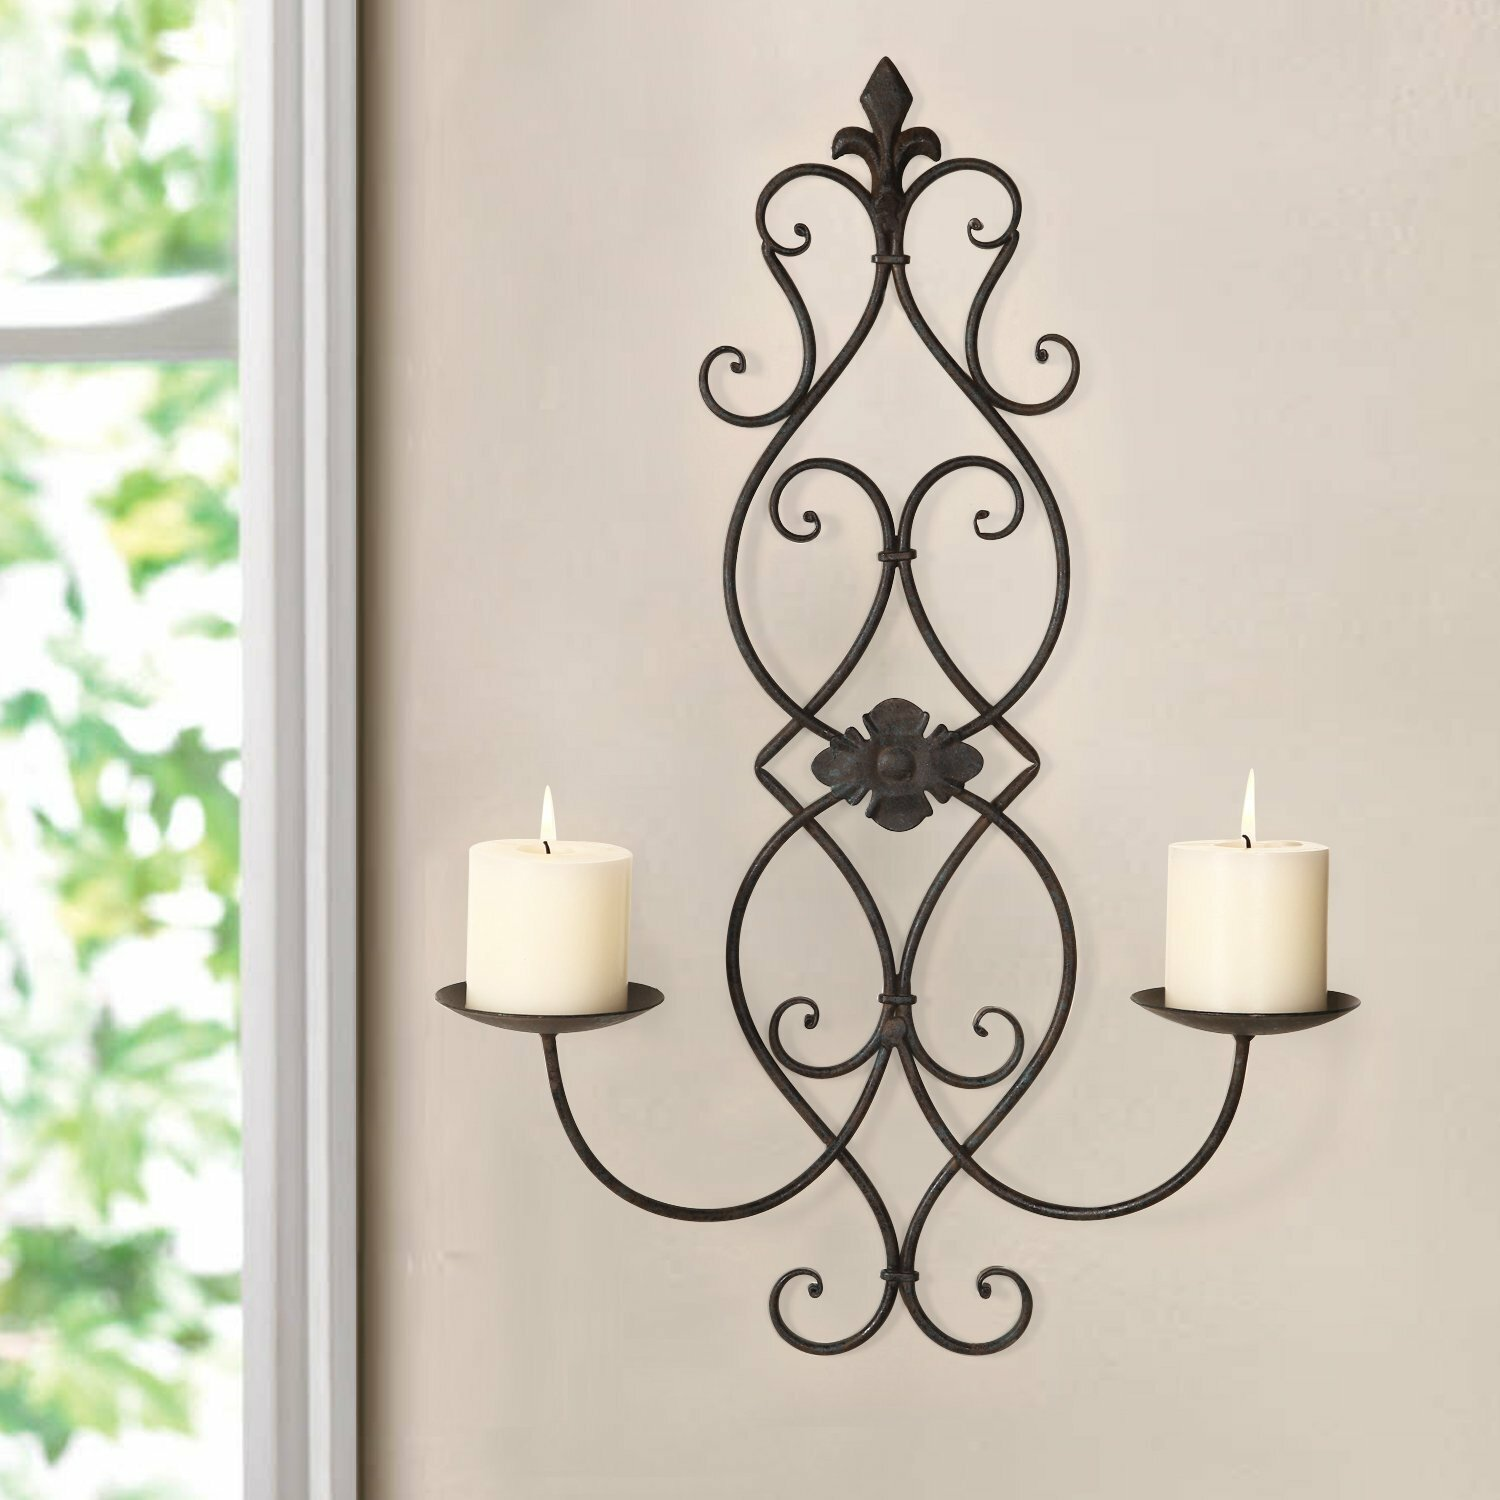 Iron Candle Holder Wall Sconce : Adeco Trading Iron Wall Sconce Candle Holder eBay